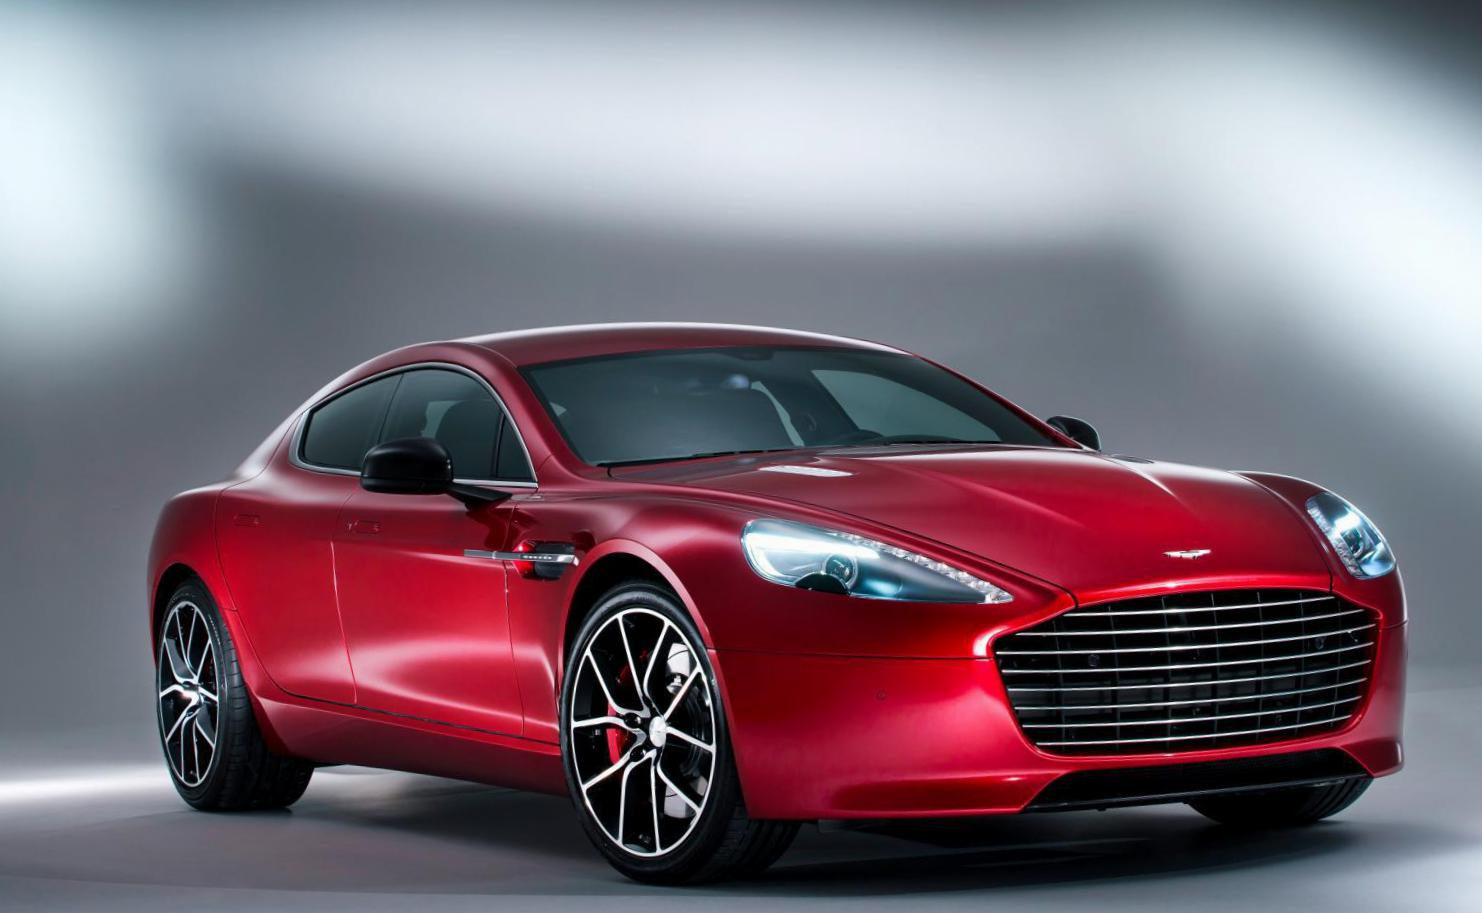 Aston Martin Rapide S Specifications 2012